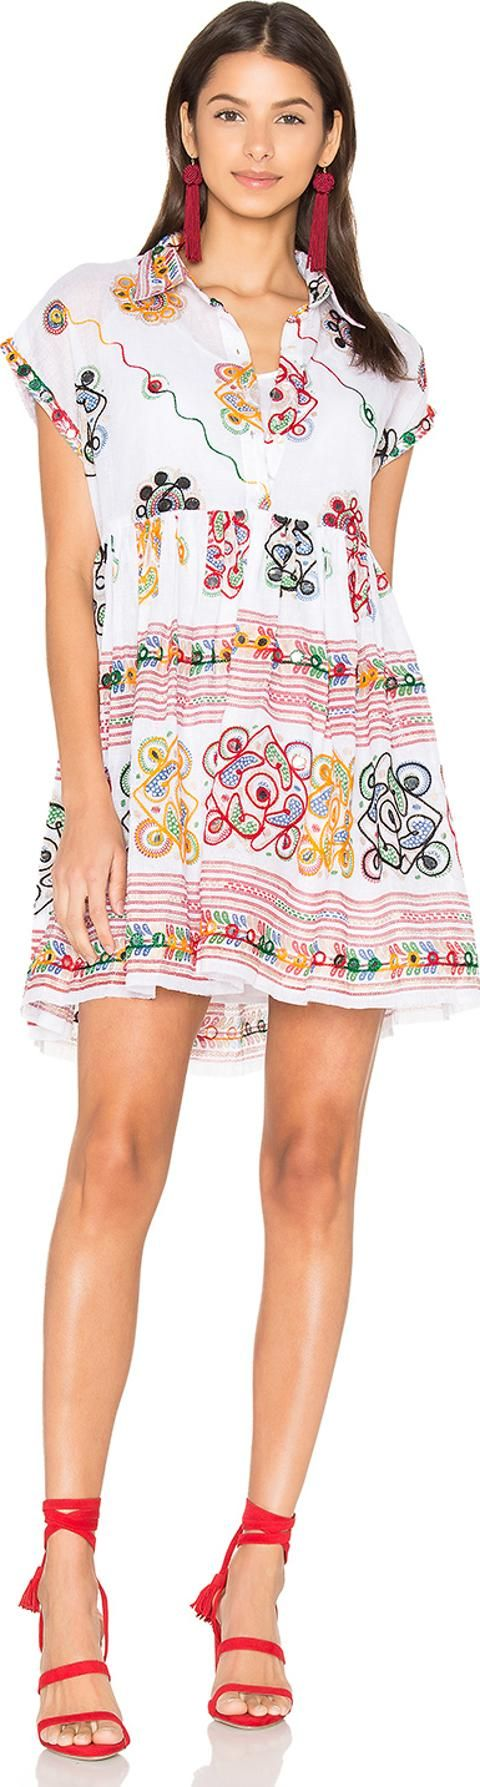 Cotton Tribal Boho Dress. 100 cotton. Hand wash cold. Fully lined. Partial front button placket. Embroidered detail with mirror disc accent.#JulietDunn #White #Dresses #Revolve Clothing #Women #fashion #obsessory #fashion #lifestyle #style #myobsession #boholook #bohemianstyle #bohochic #ss17 #bohofashion #trends #fashionforwomen